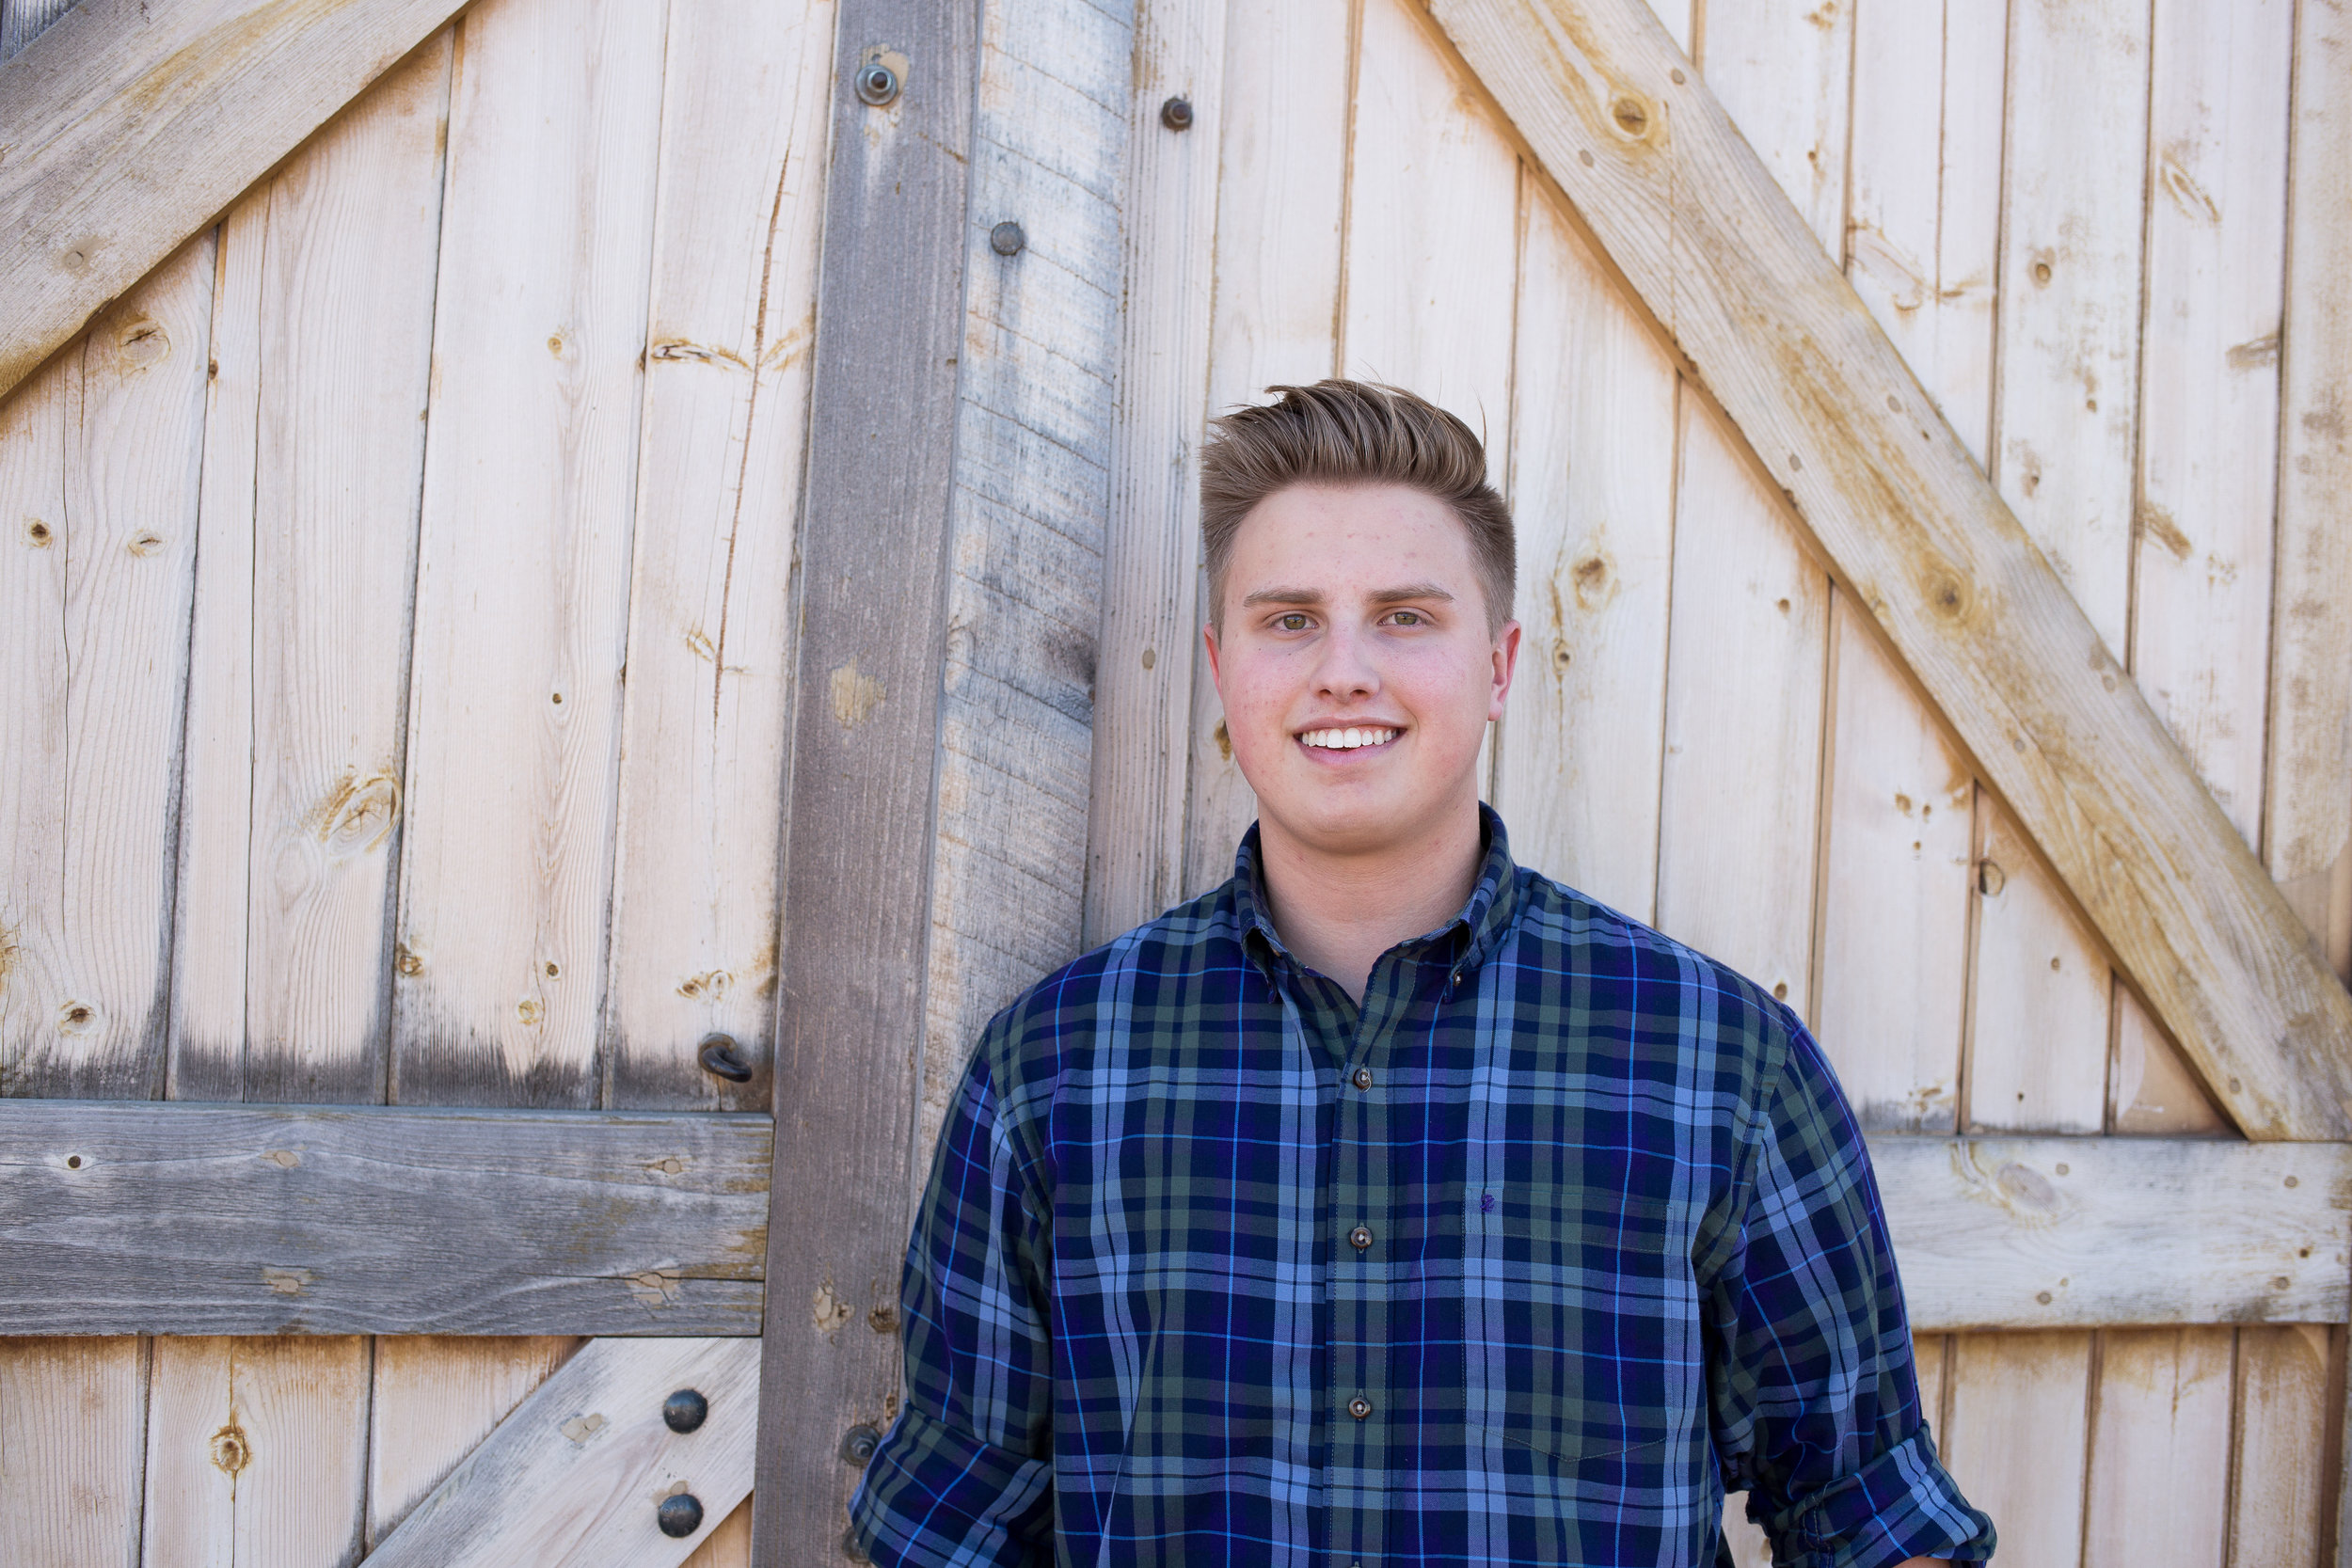 St. Mary's Senior Photos at Rock Ledge Ranch leaning against a barn door in a flannel shirt Stacy Carosa Photography Colorado Springs